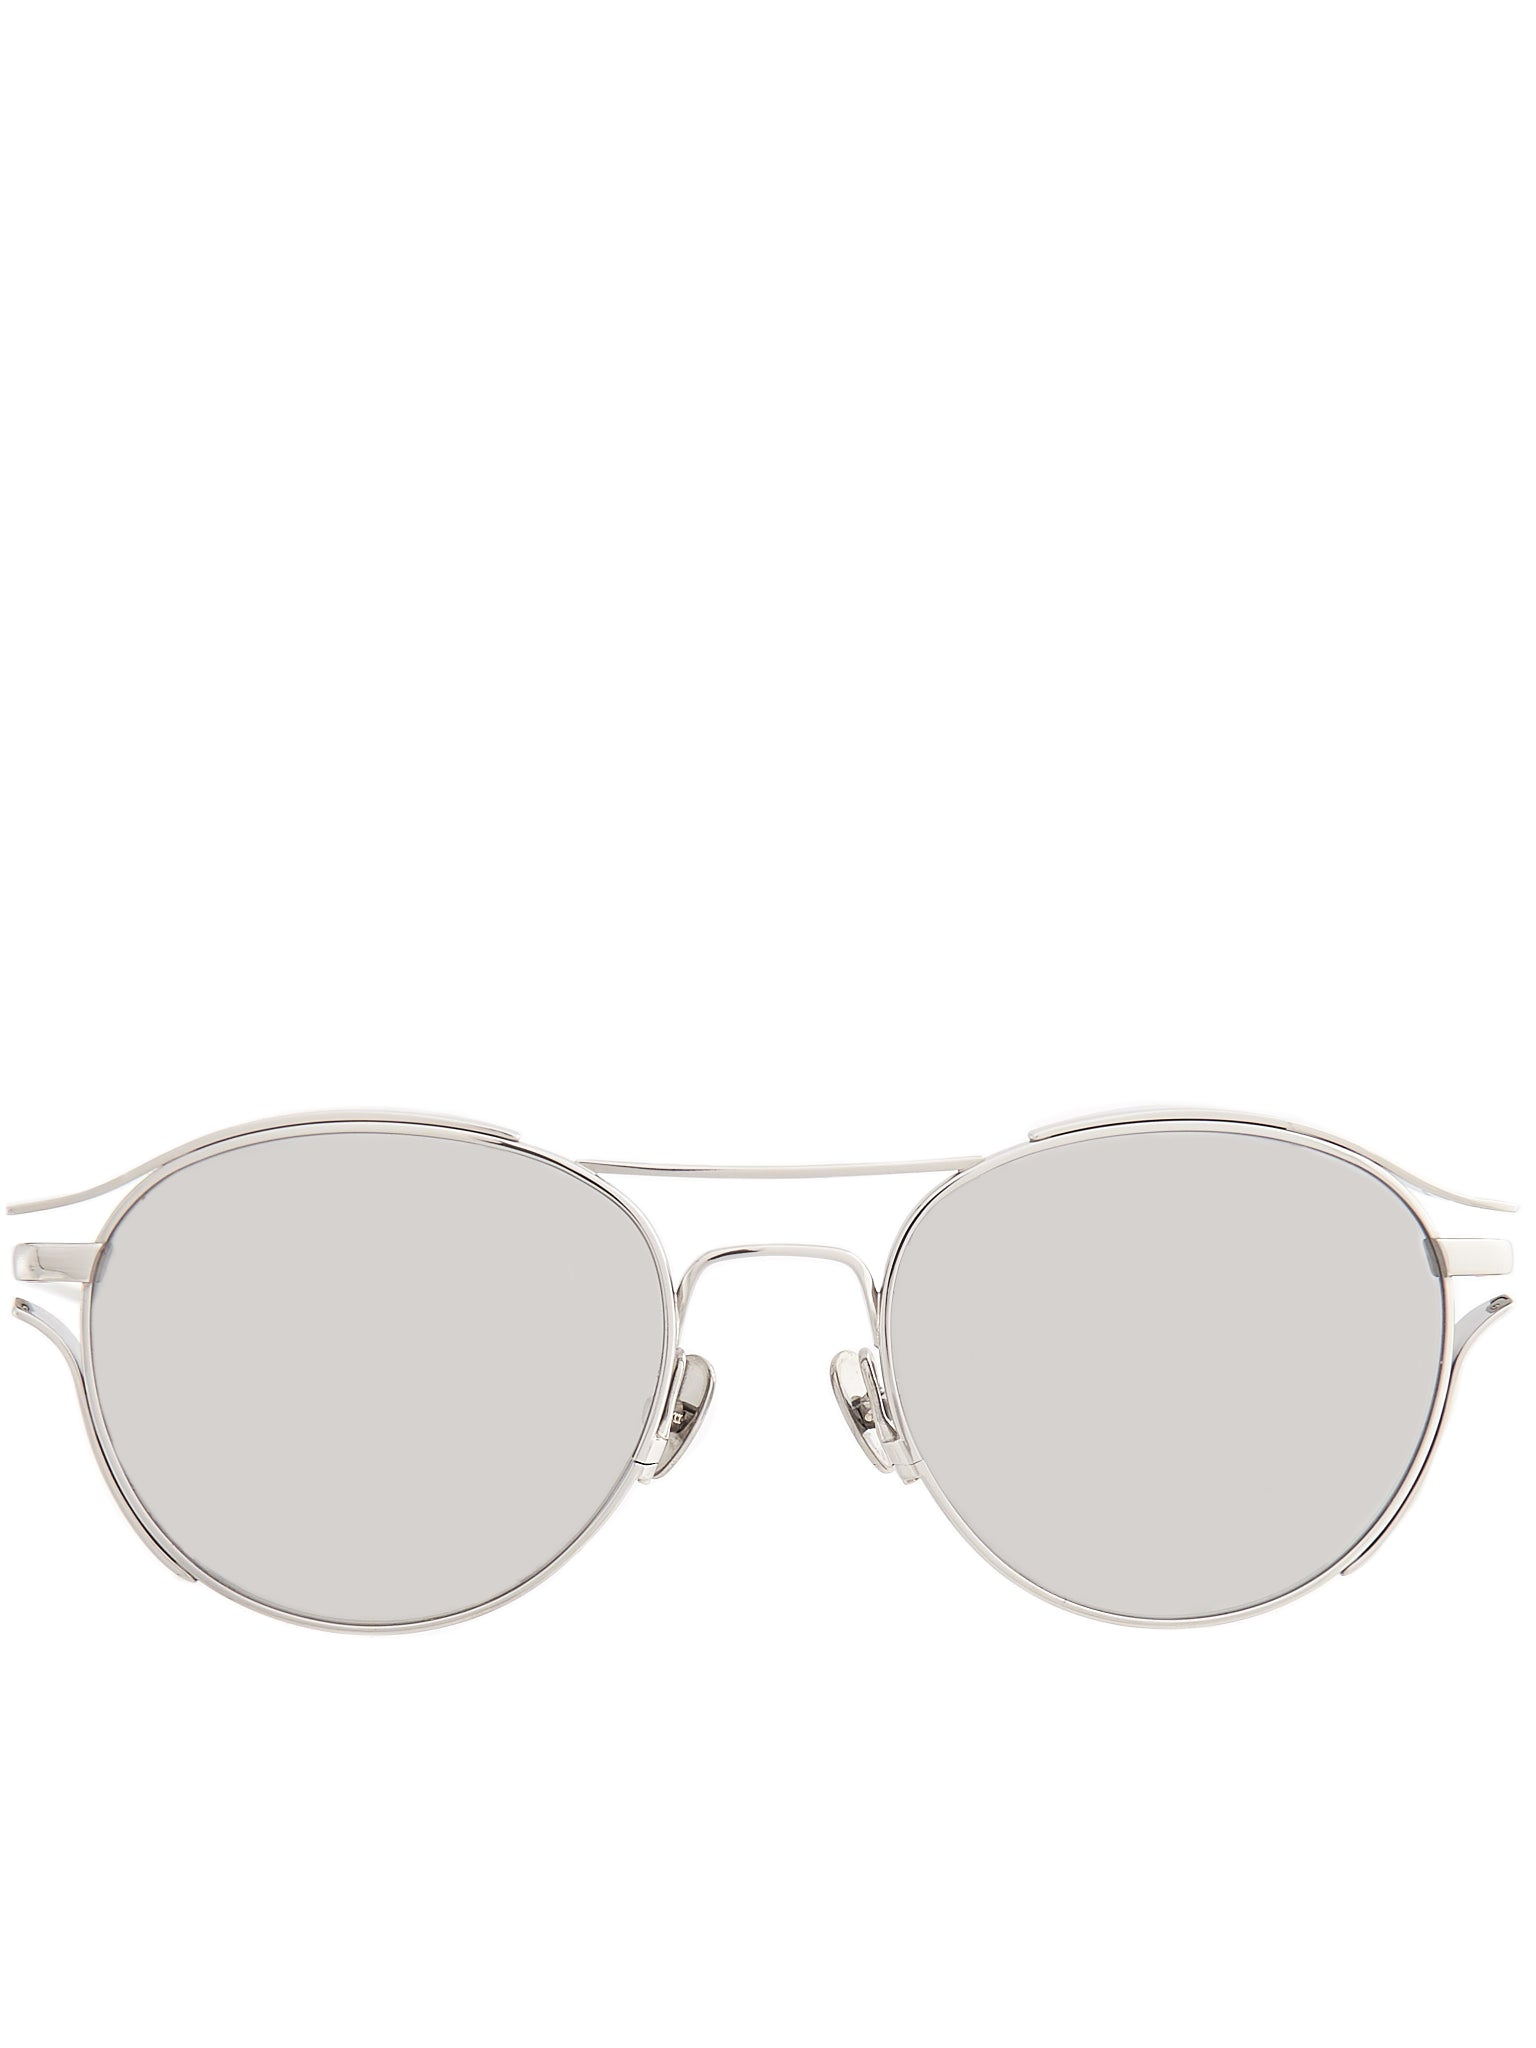 Oval Aviator Sunglasses (LFL944C2SUN-WHITE-GOLD-PLATINU)